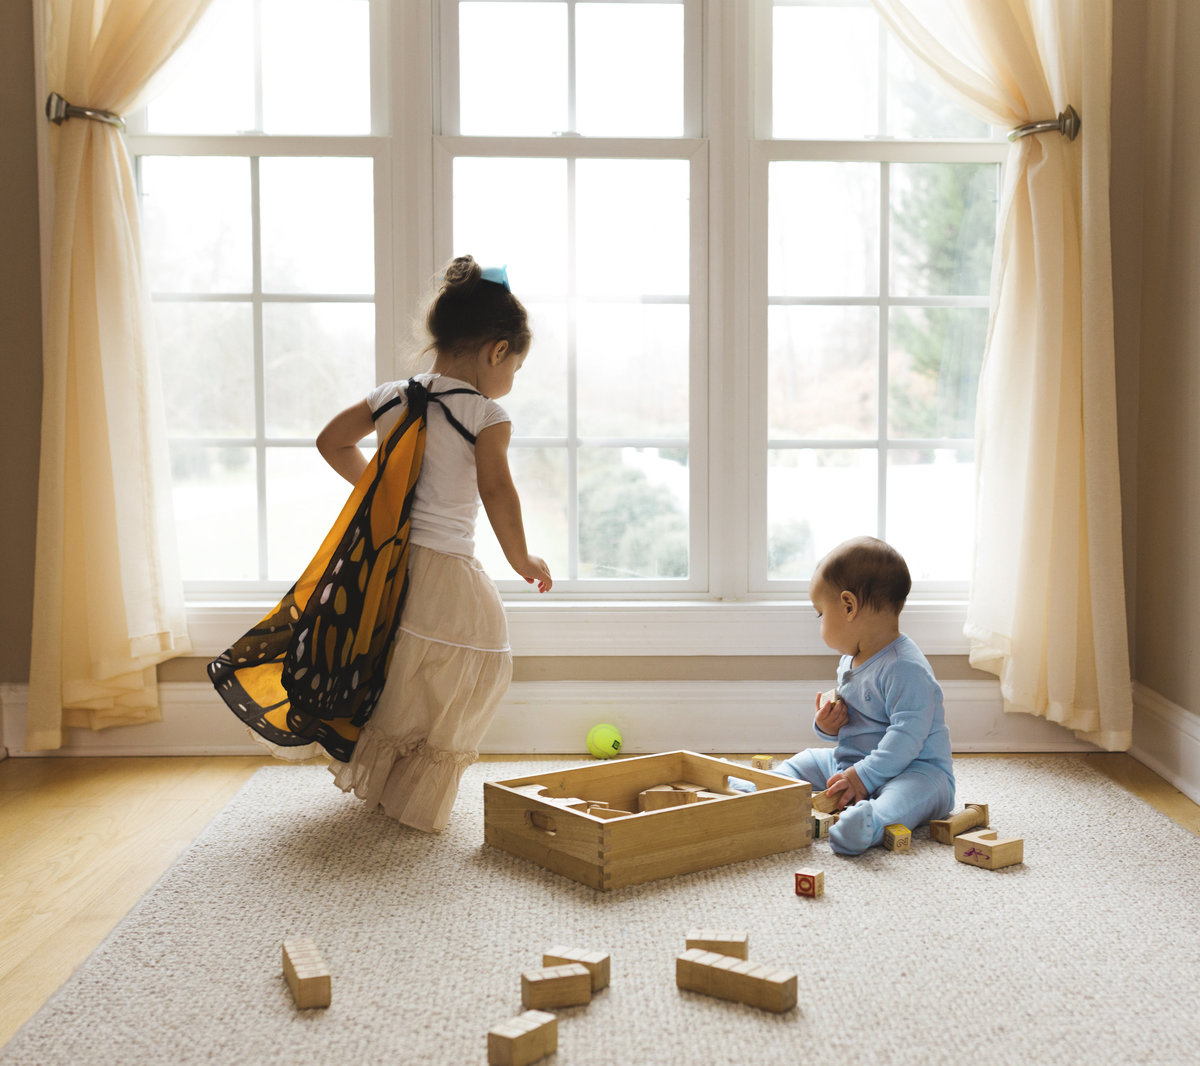 charlotte documentary photographer jamie lucido captures a natural light image of toddlers at play in their home